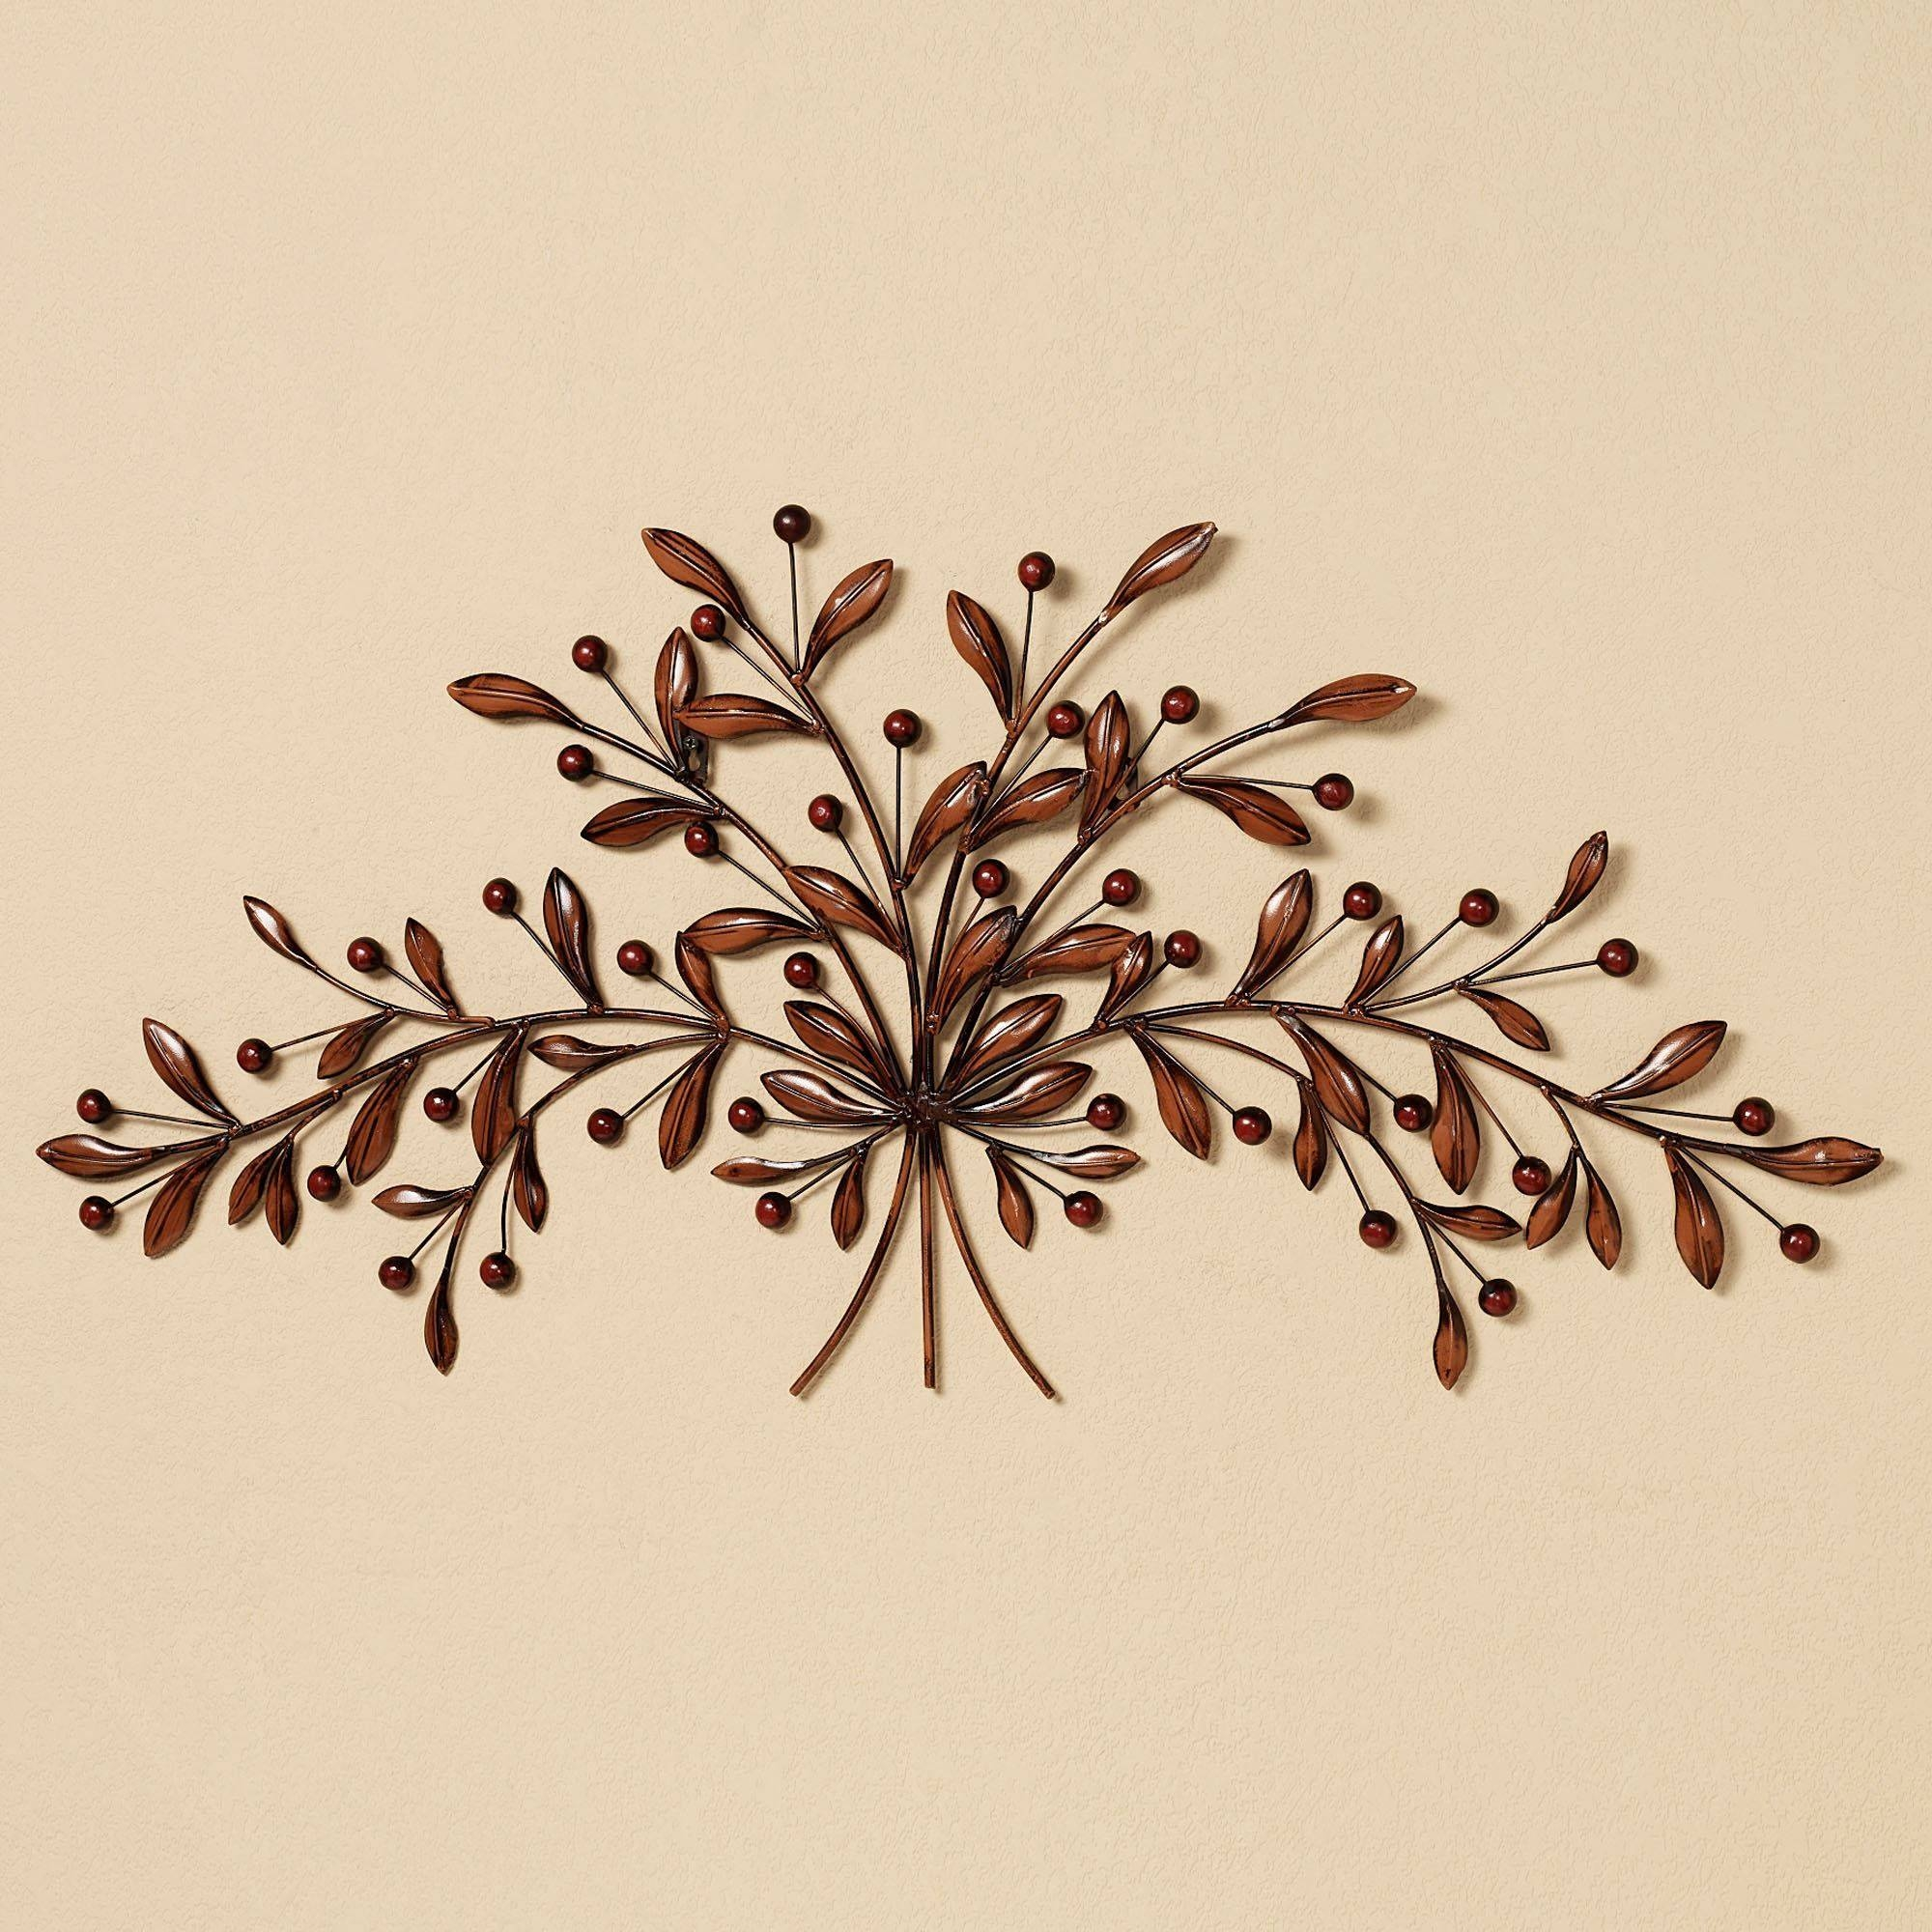 Cantabria Branch Metal Wall Art Spray Pertaining To 2018 Metal Wall Art Leaves (View 14 of 20)